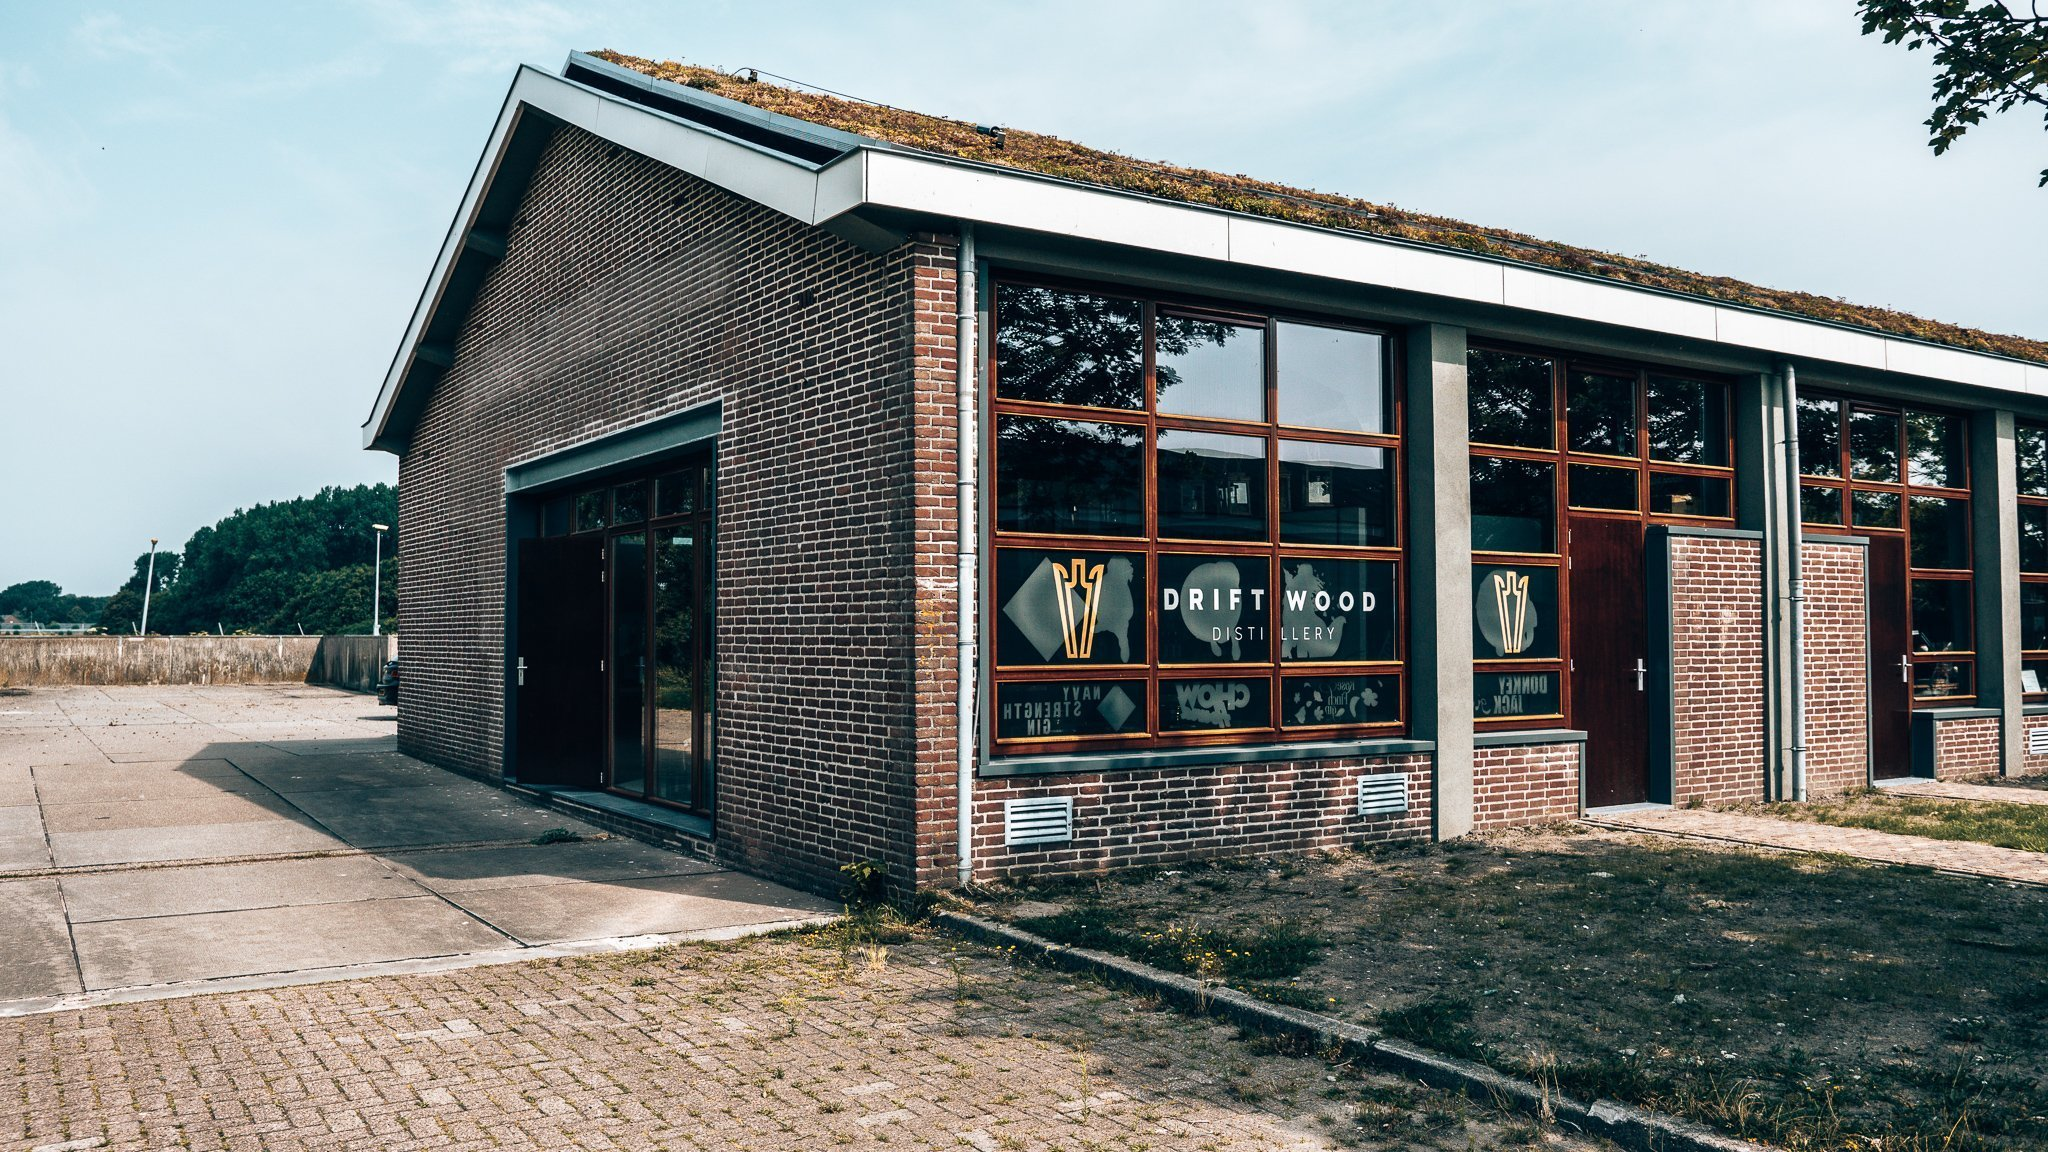 Driftwood Distillery in Katwijk, Alles over gin.